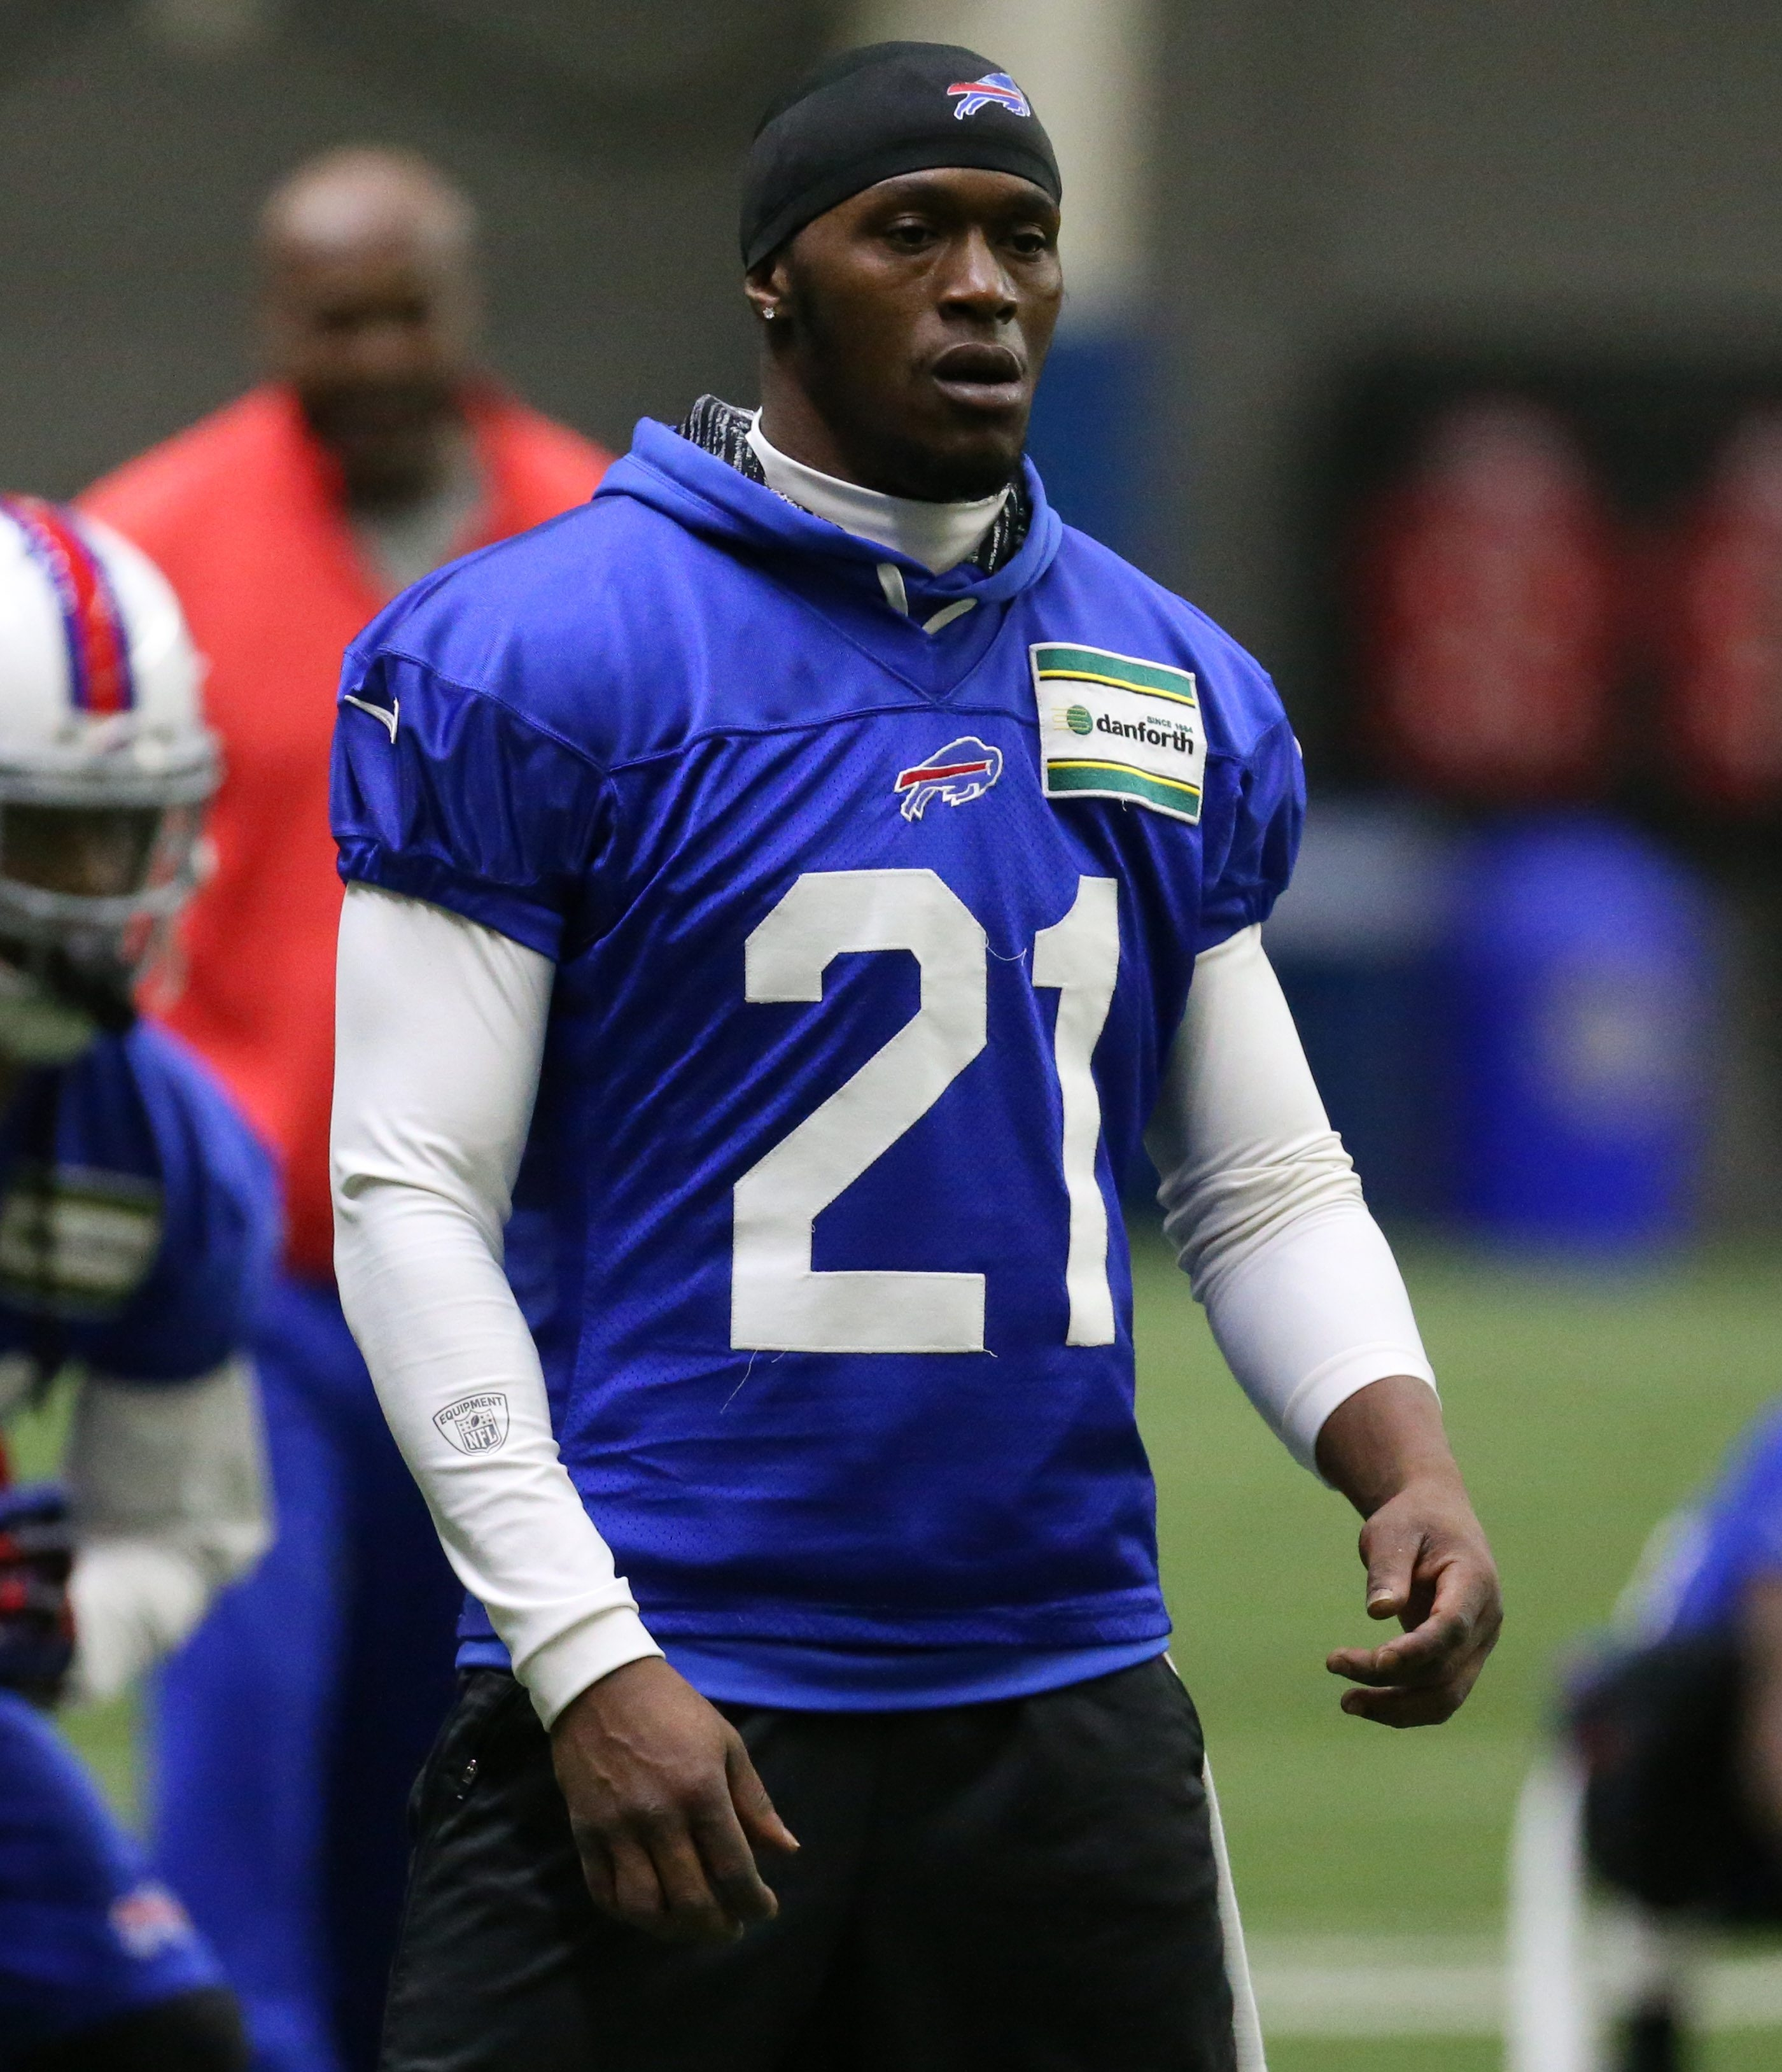 Leodis McKelvin is coming off his best game of the season and looks to help the Bills end the season with a win.